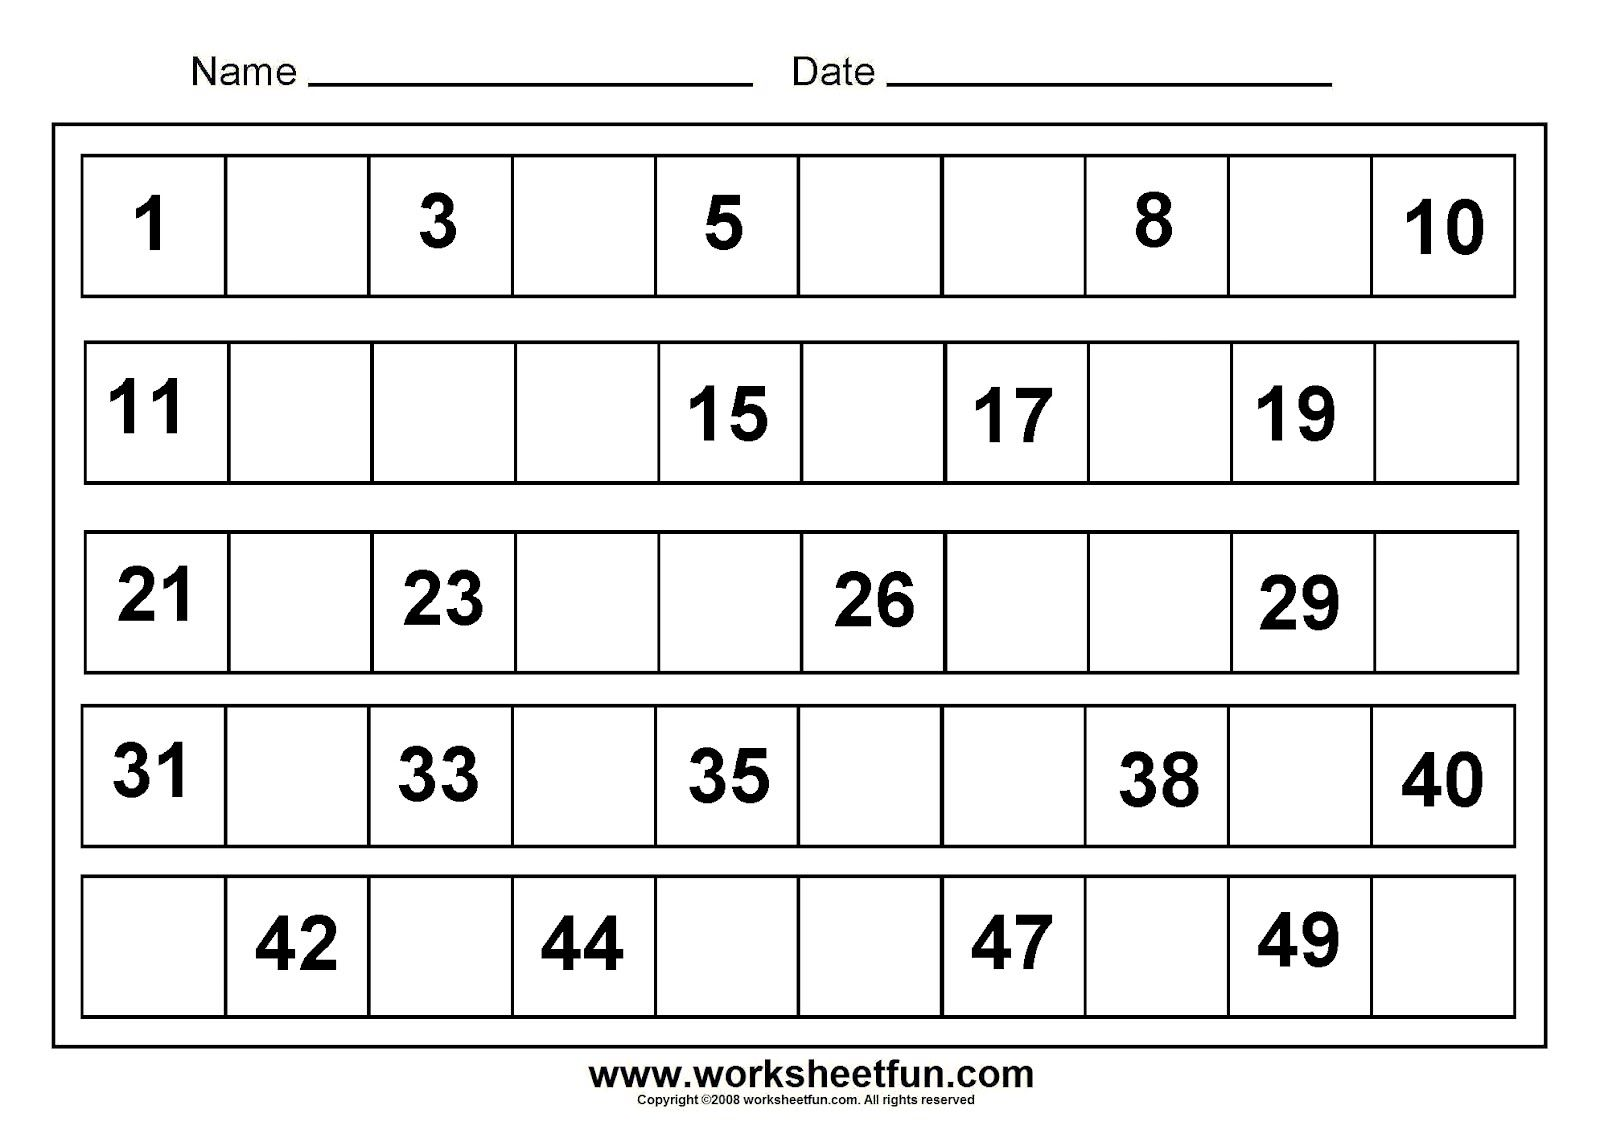 math worksheet : 1000 images about work sheets on pinterest  math worksheets  : Kindergarten Math Practice Worksheets